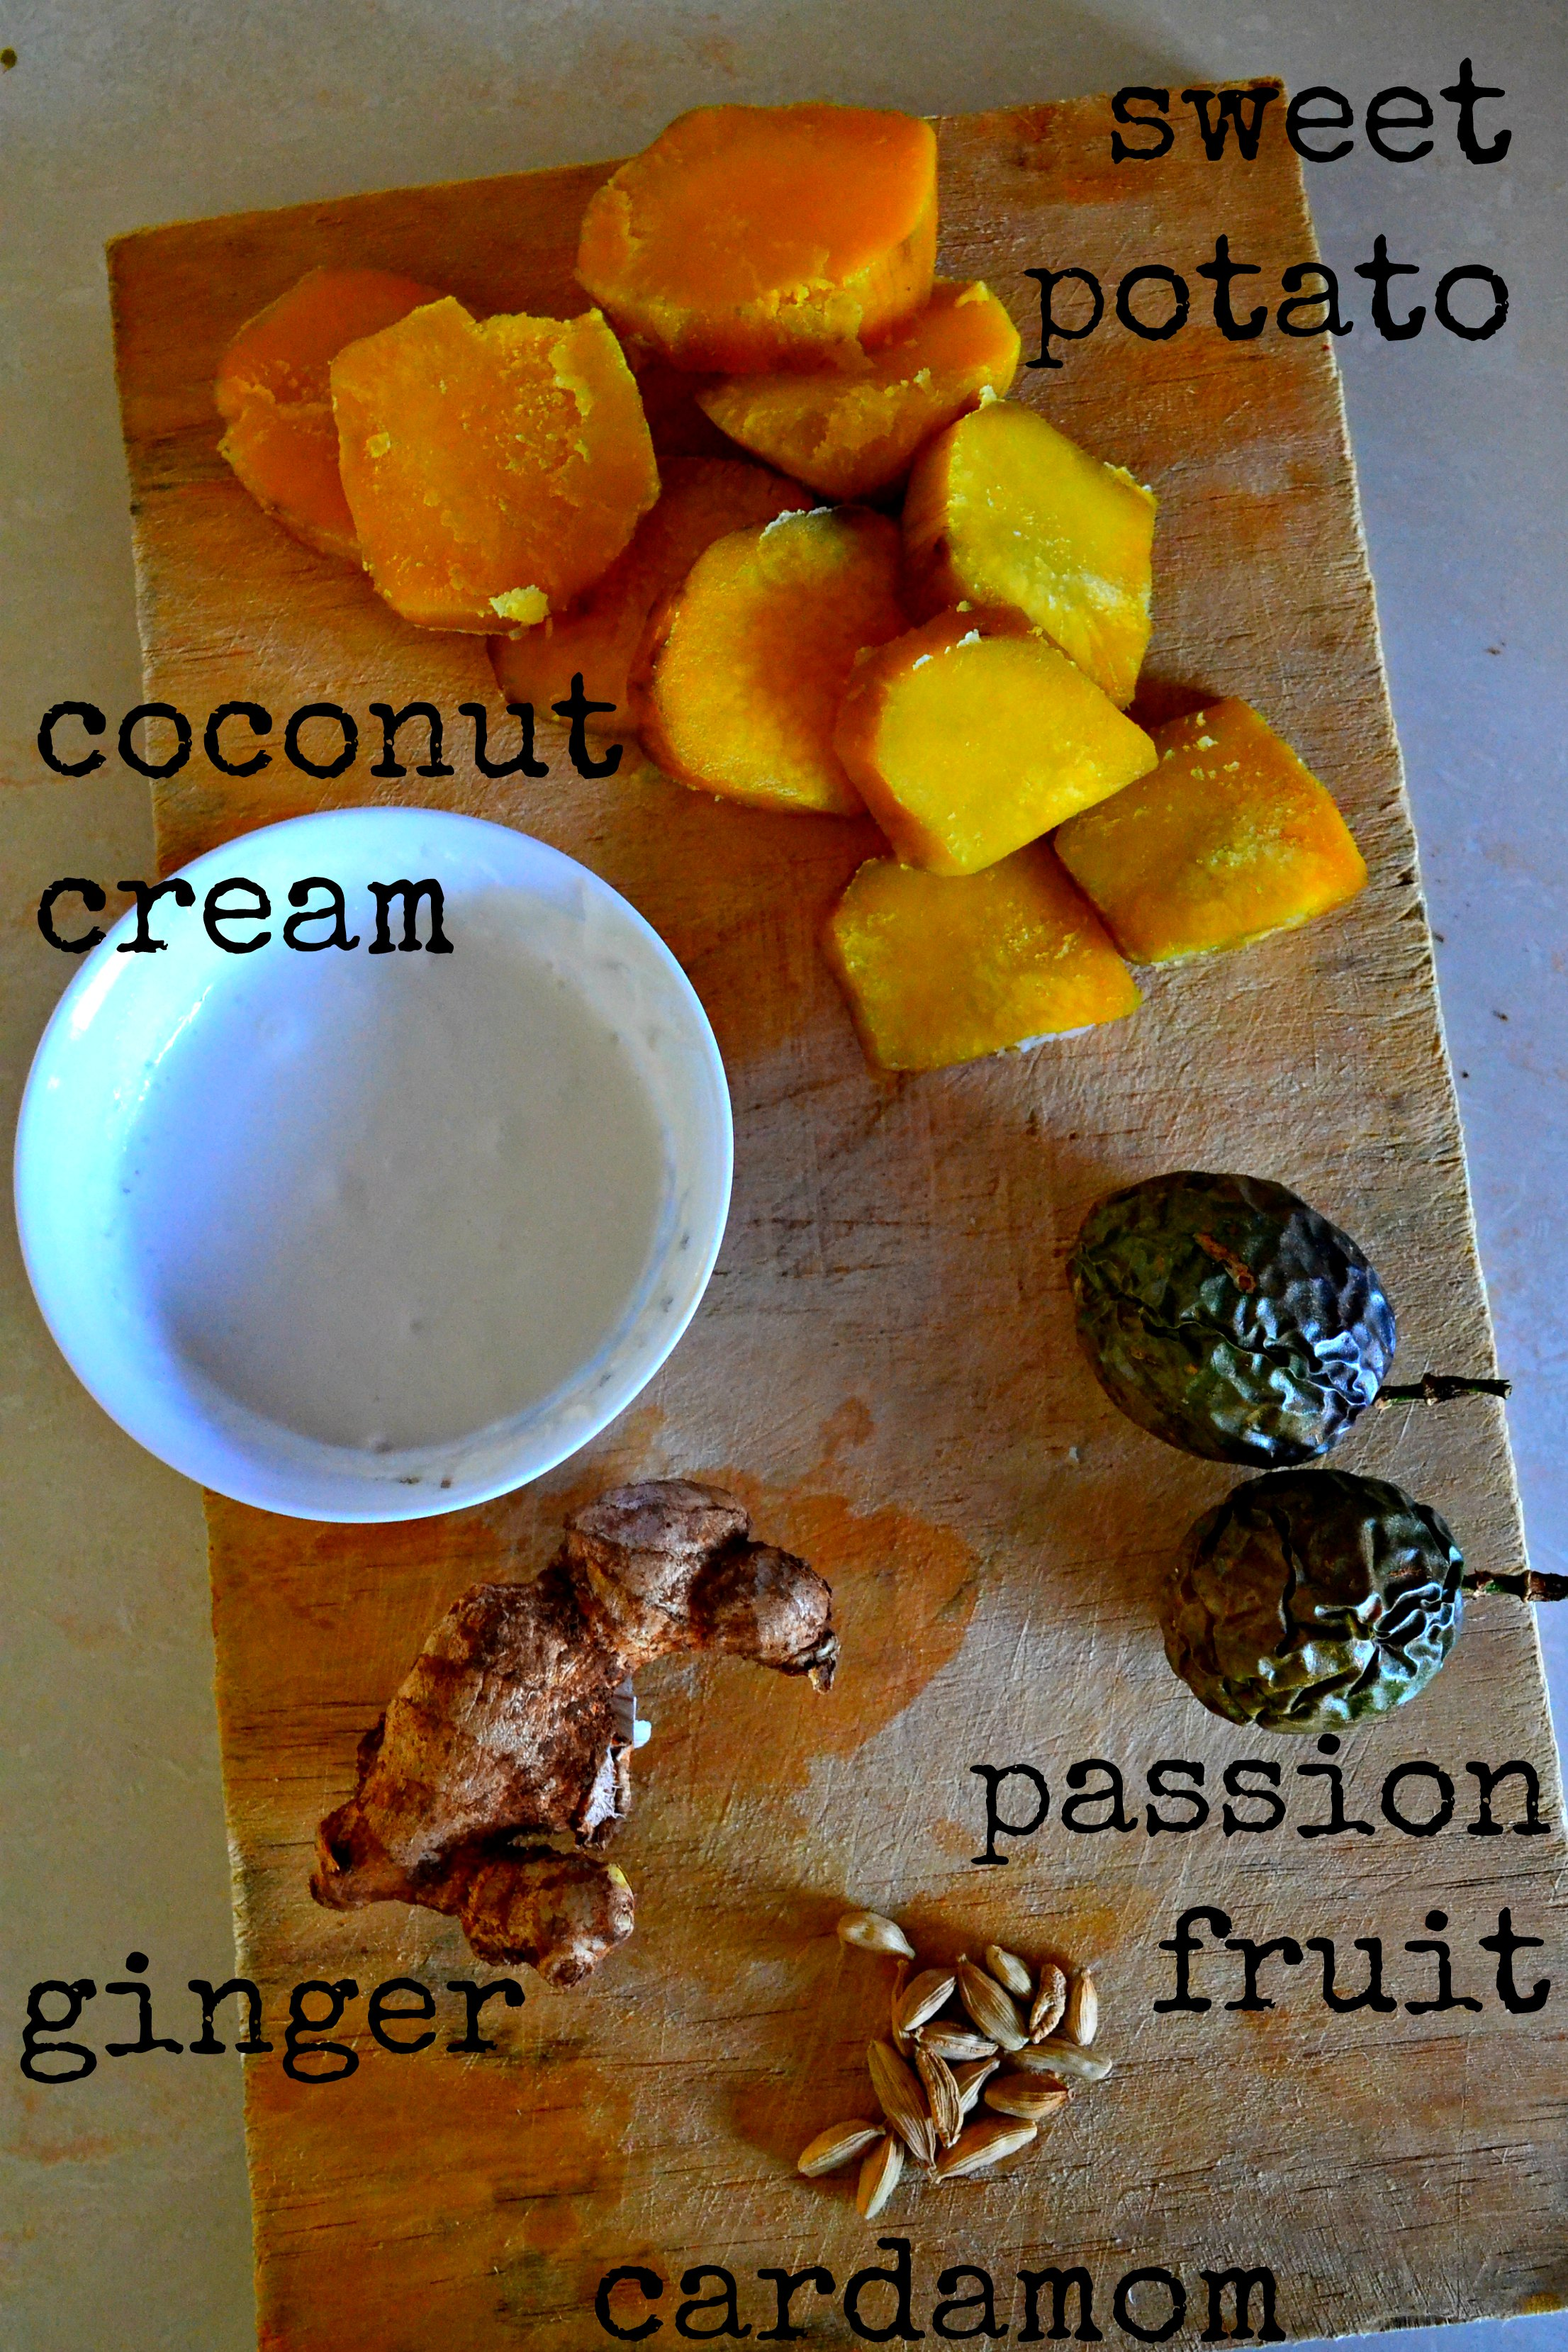 ... sweet-potato-in-cardamom-and-coconut-cream-sauce_how-to-cook-sweet